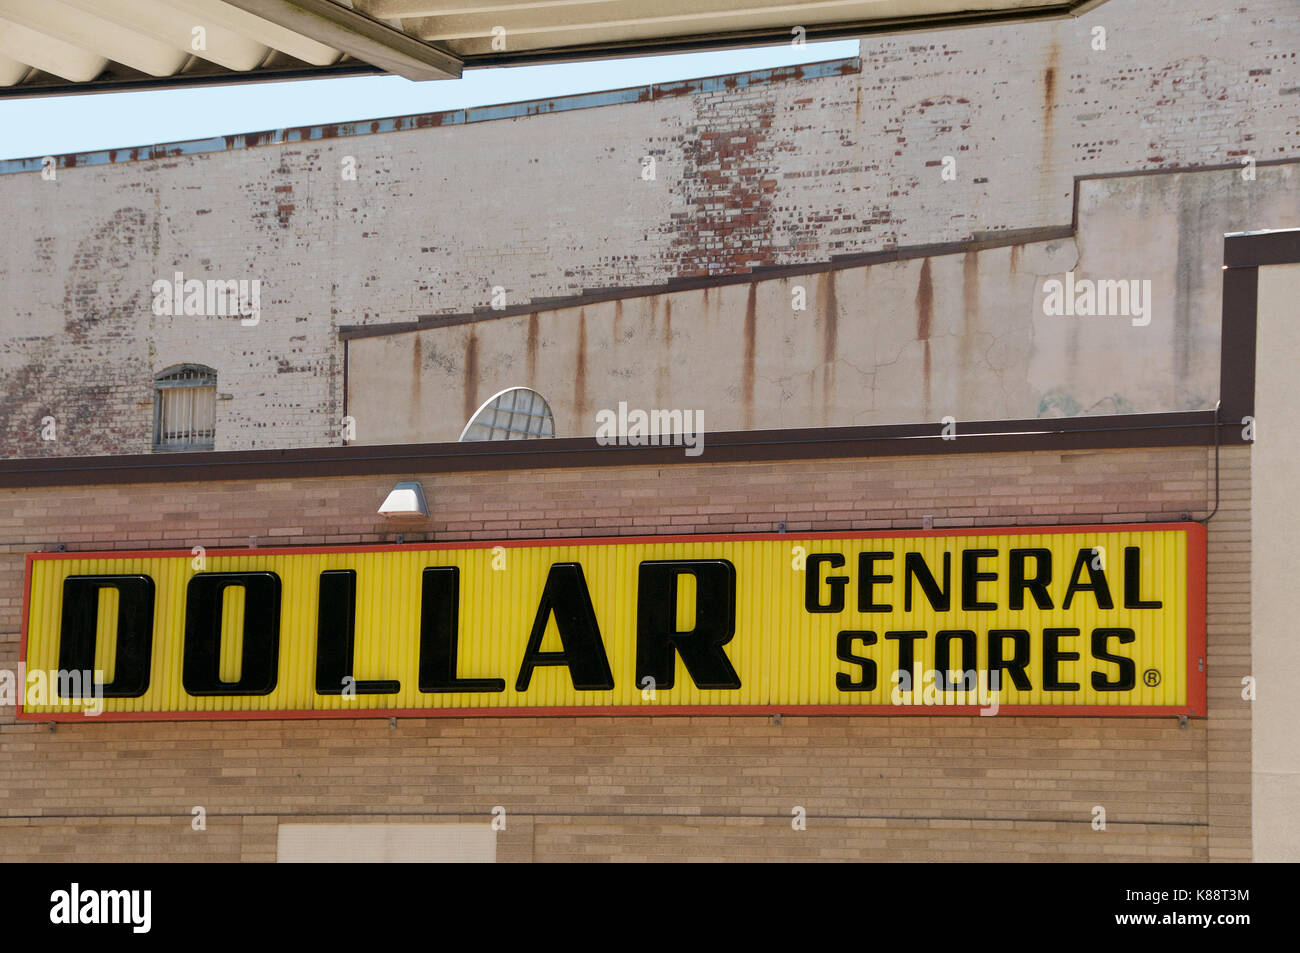 Dollar general coupons sign in